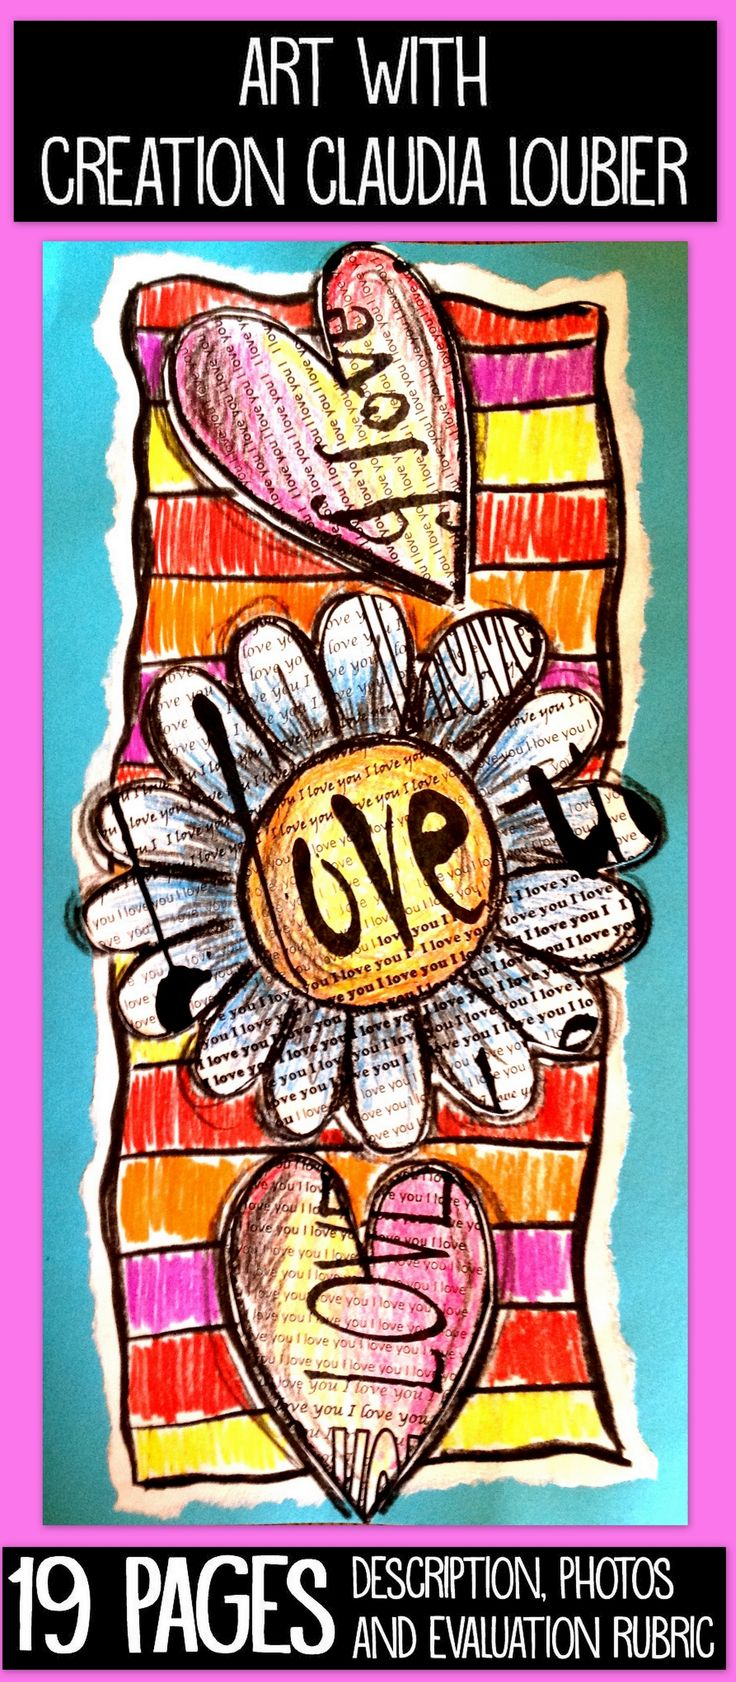 Here is a mixed media Valentine's Day project for Grade 2 and up. In this document, you will have a reproducible sheet with the written words 'Je t'aime' and another with 'I love you'. We are working on lines and their directions. So every single project will be original and different than the others. Only using coloured pencil crayons. You can use this activity to create amazing Valentine's Day cards. We can never have too much love! Art lesson - Créations Claudia Loubier